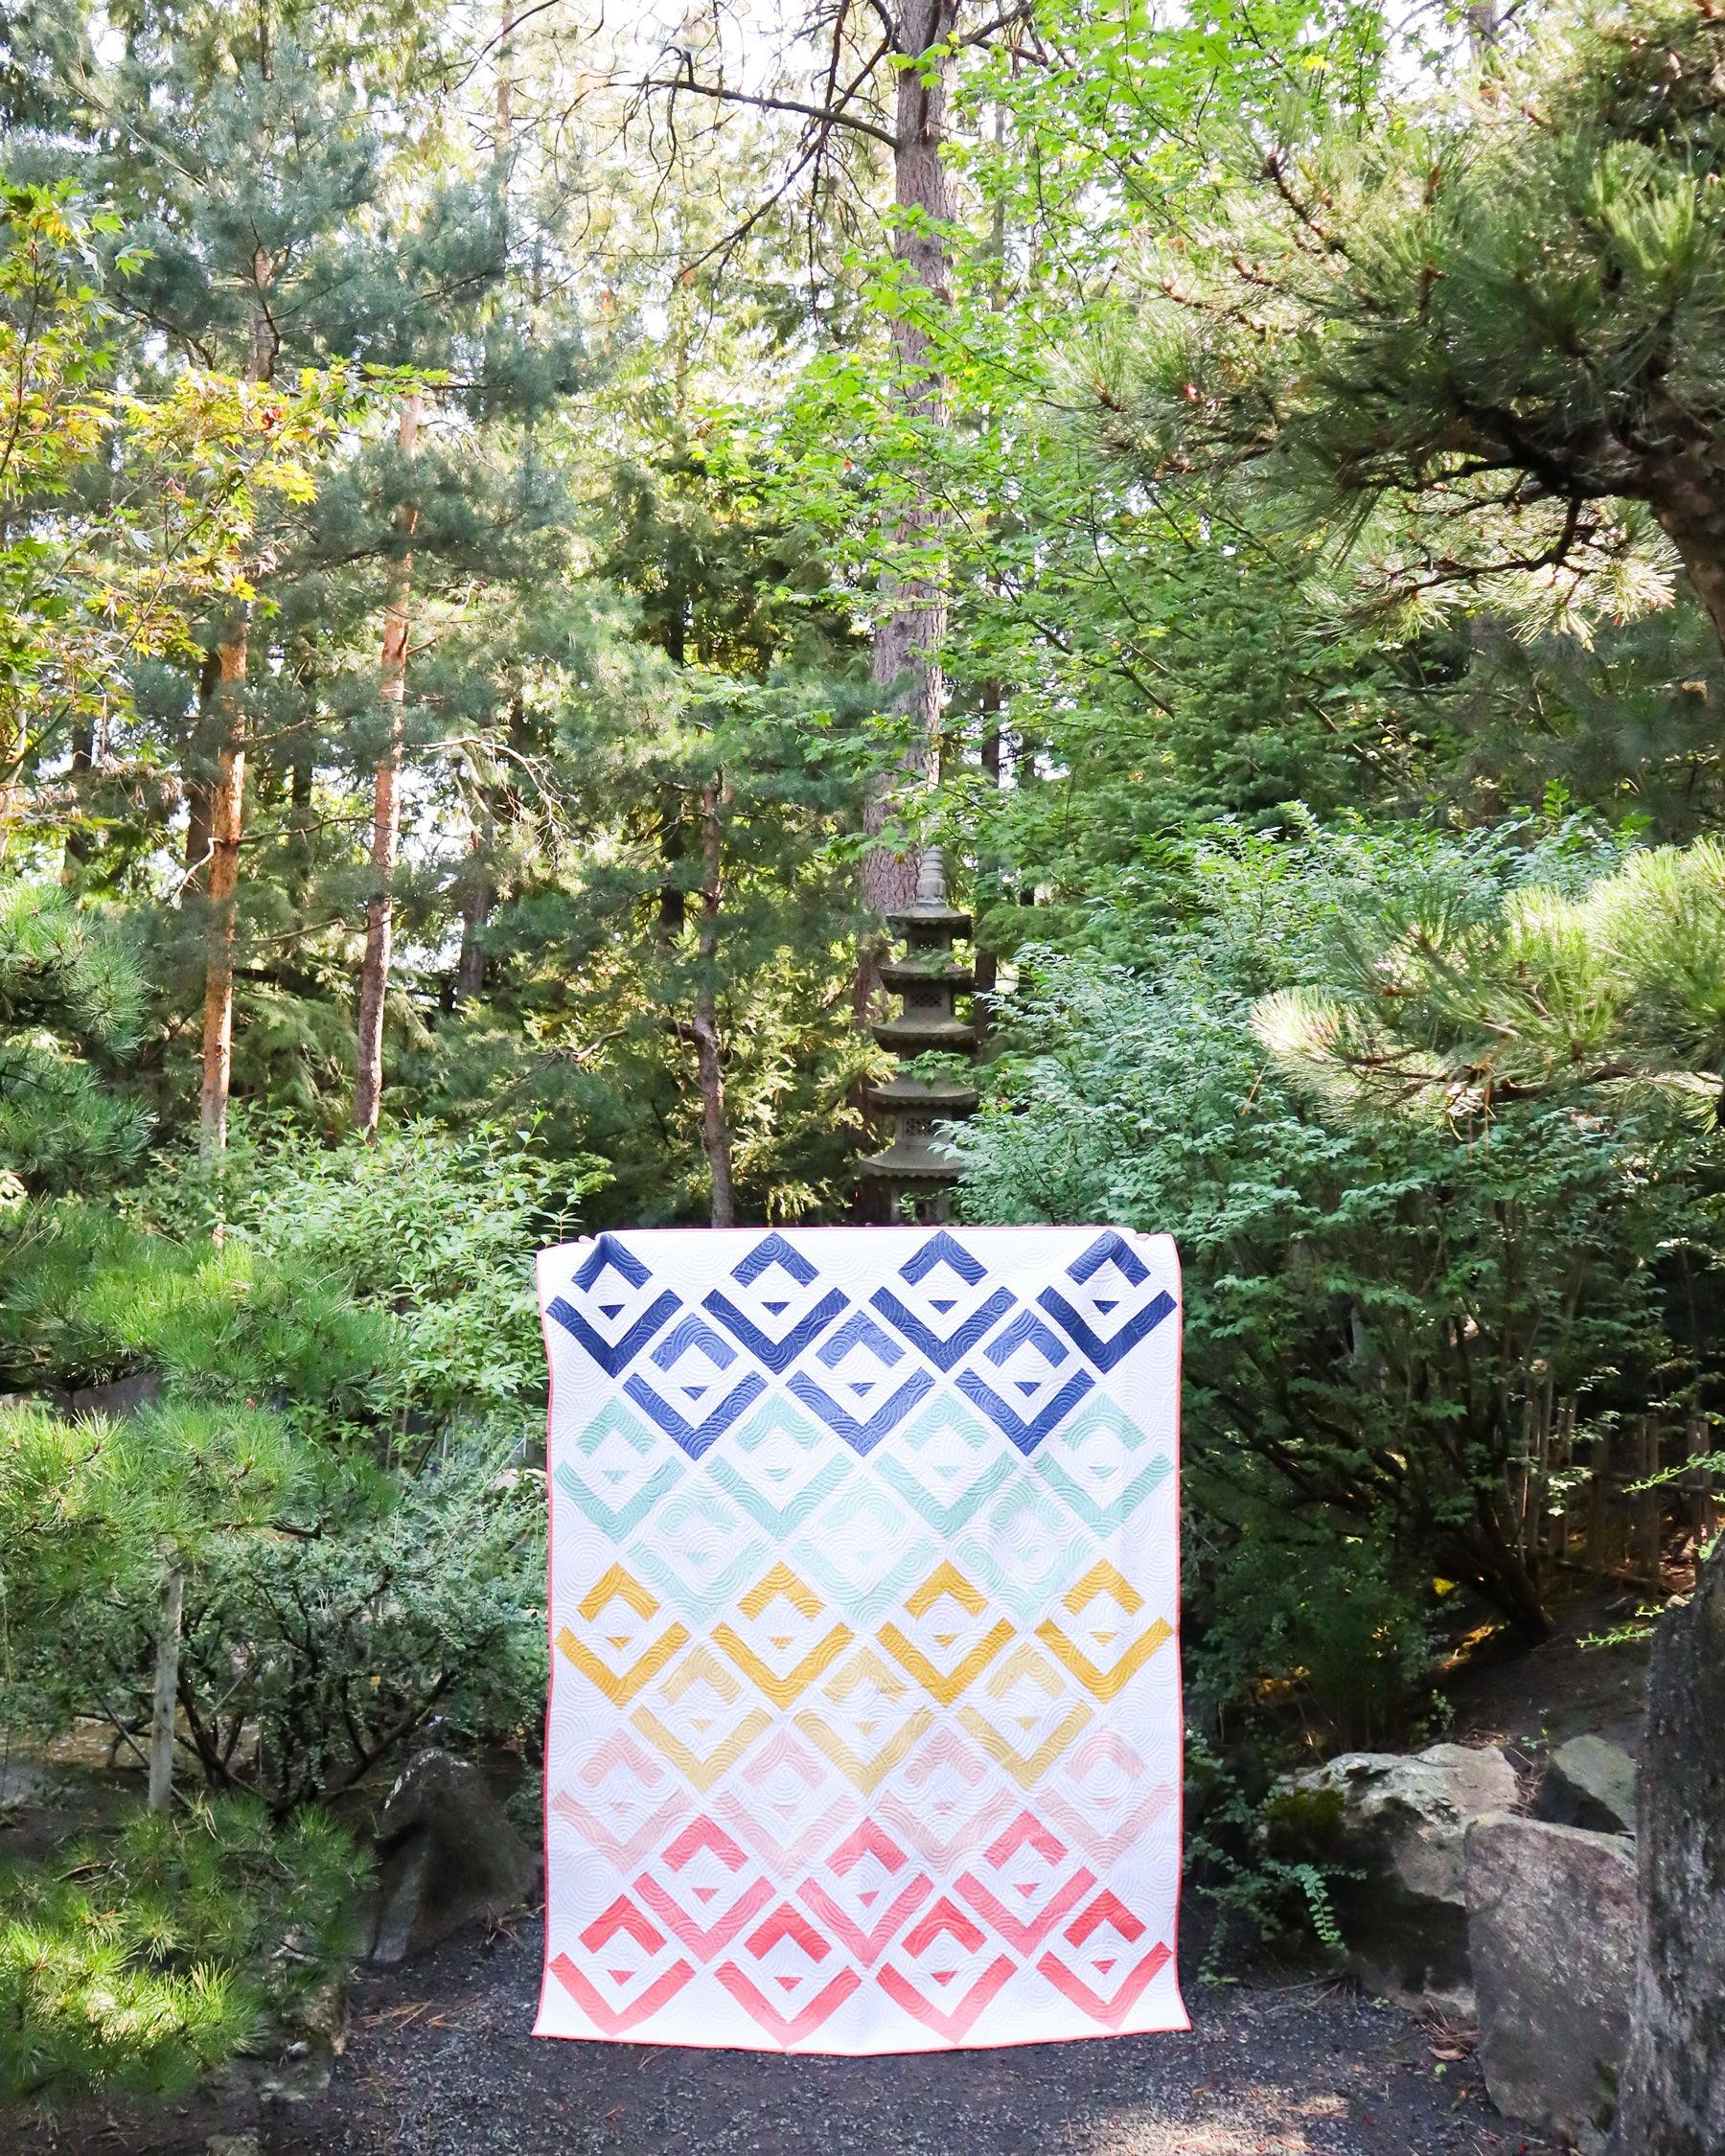 Quilts in the wild - Cabin Valley quilt by Cotton and Joy